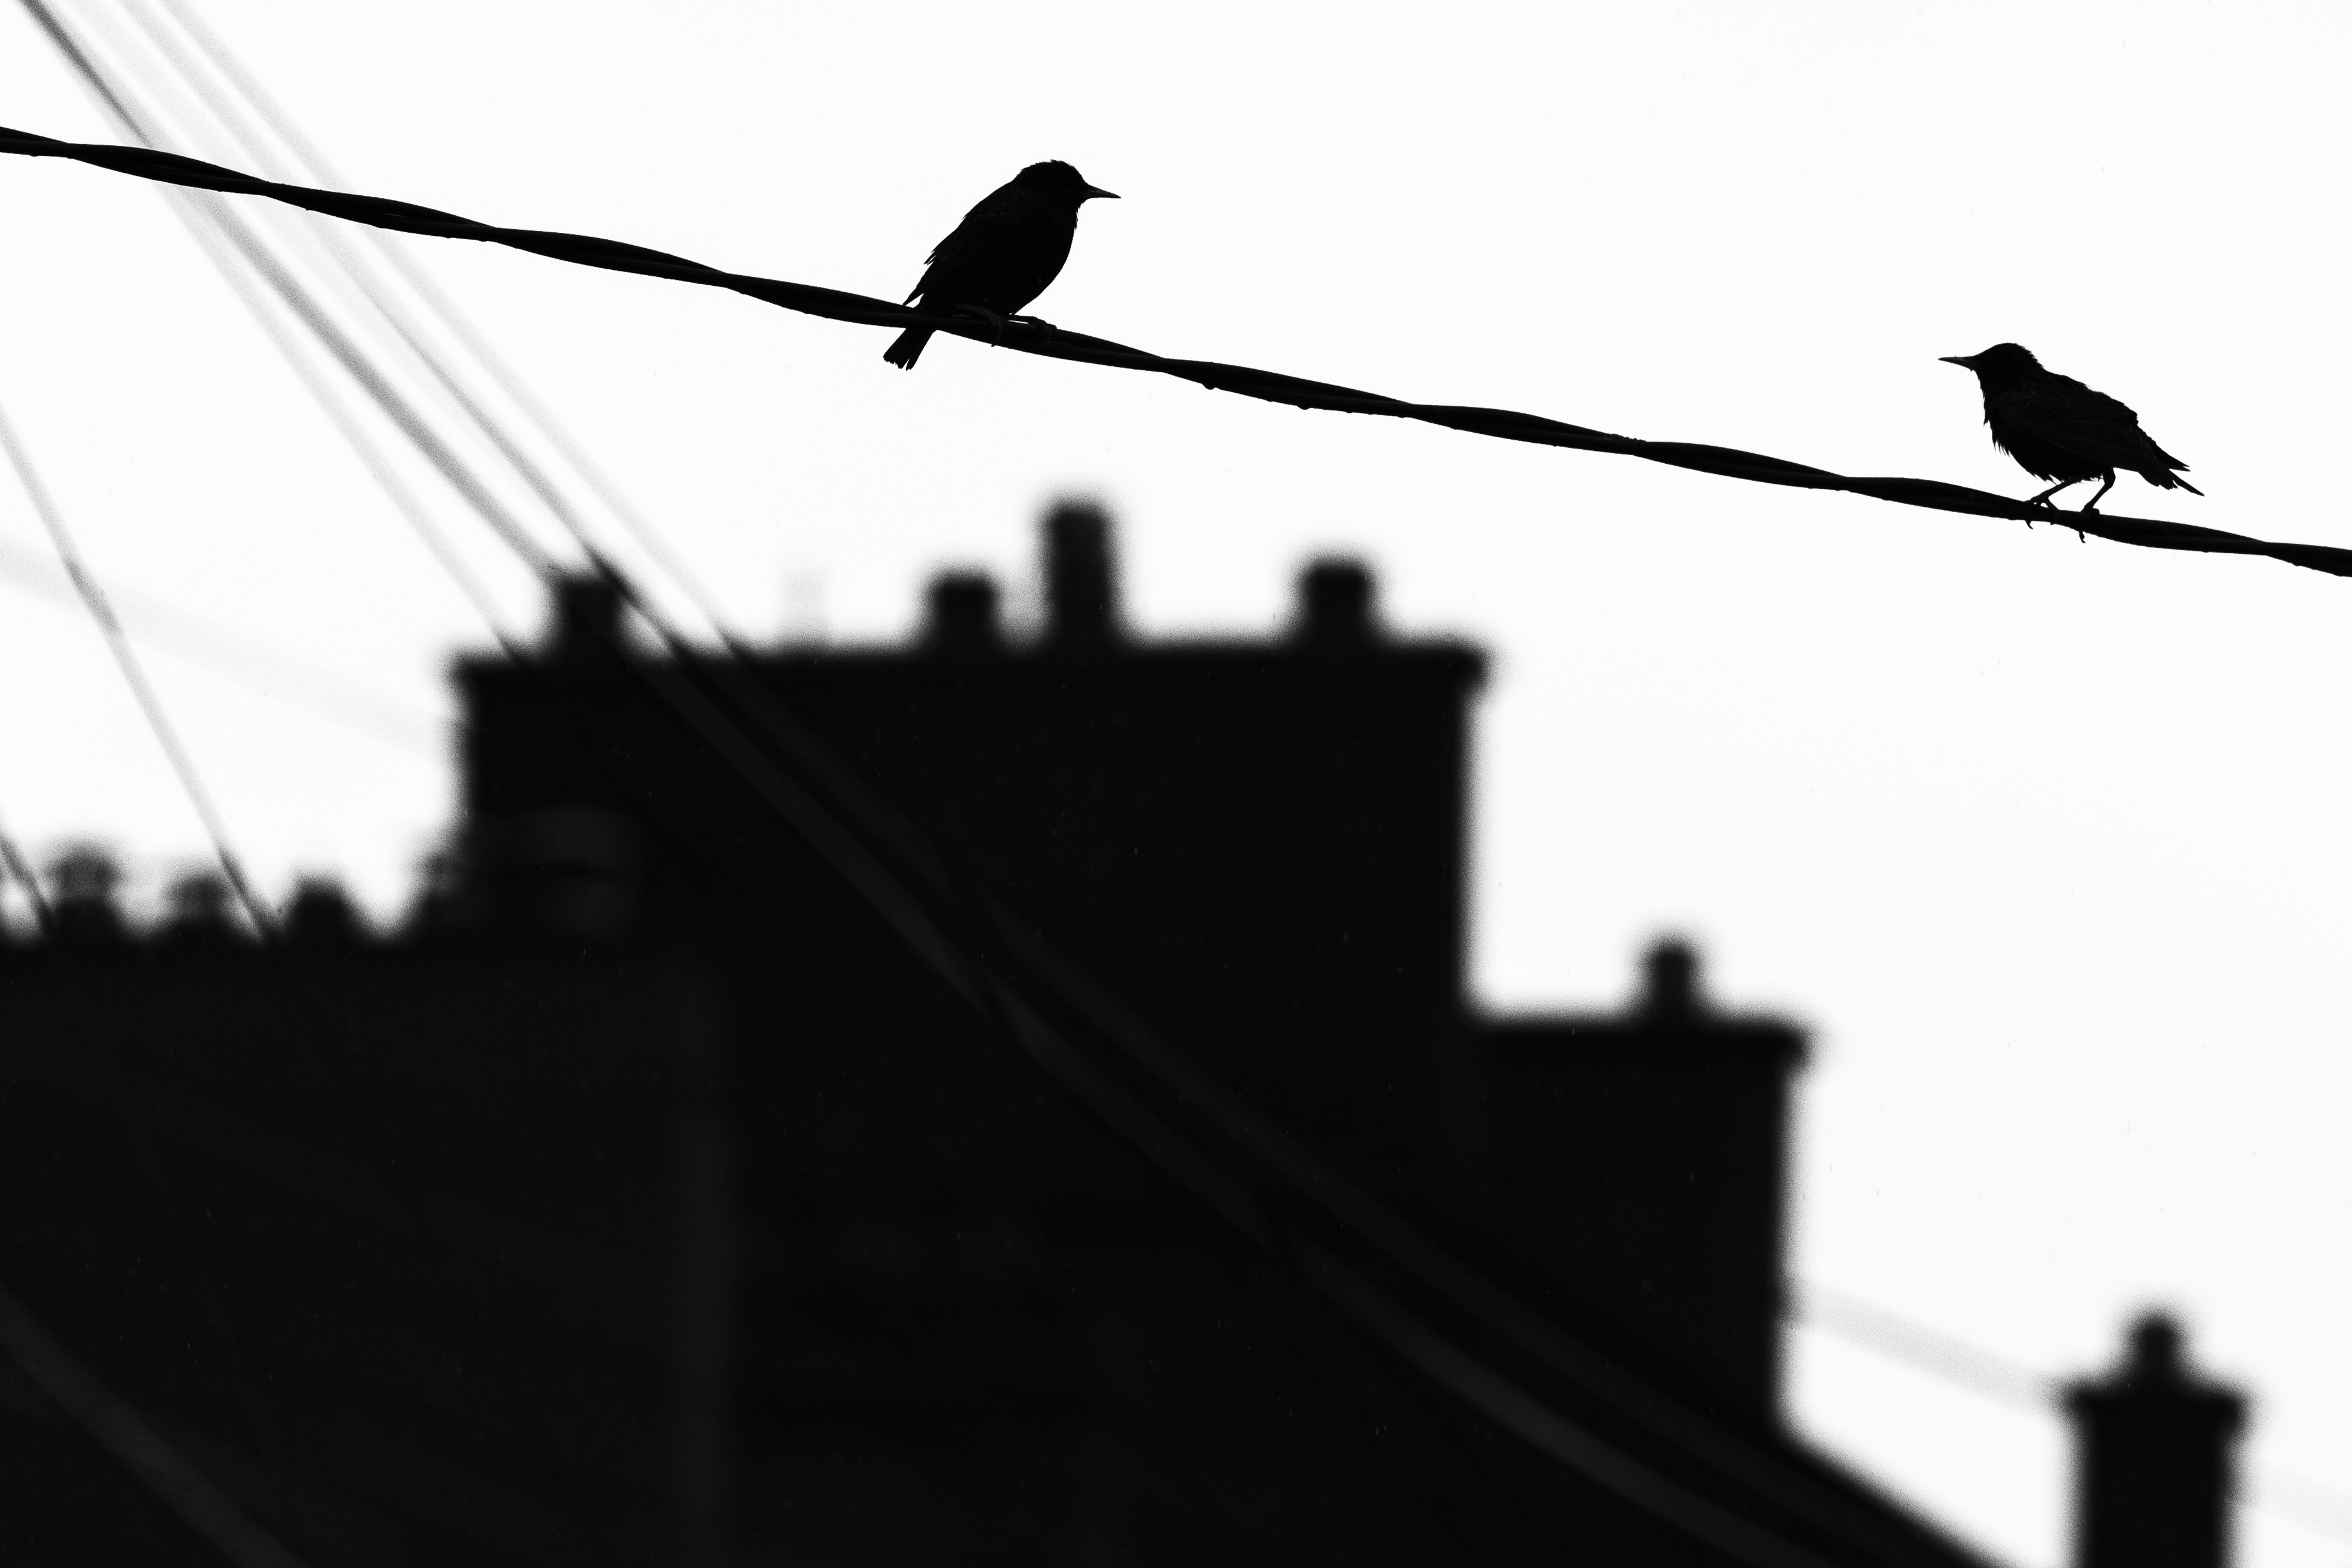 Two small birds on a telephone cable